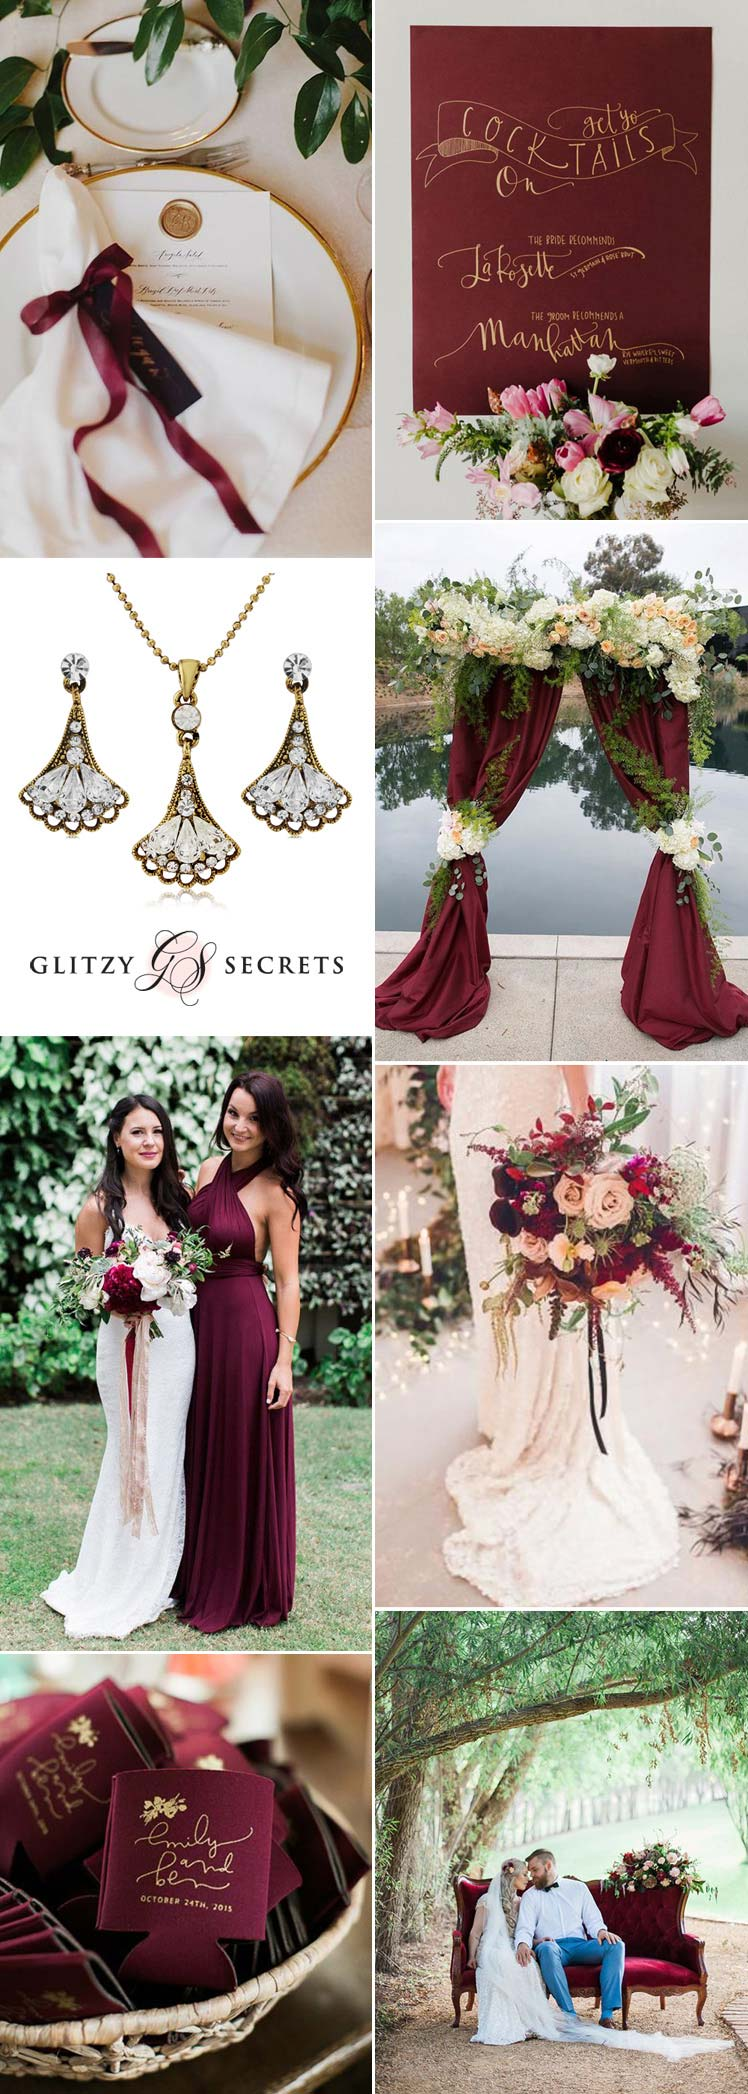 Burgundy and gold wedding theme inspo